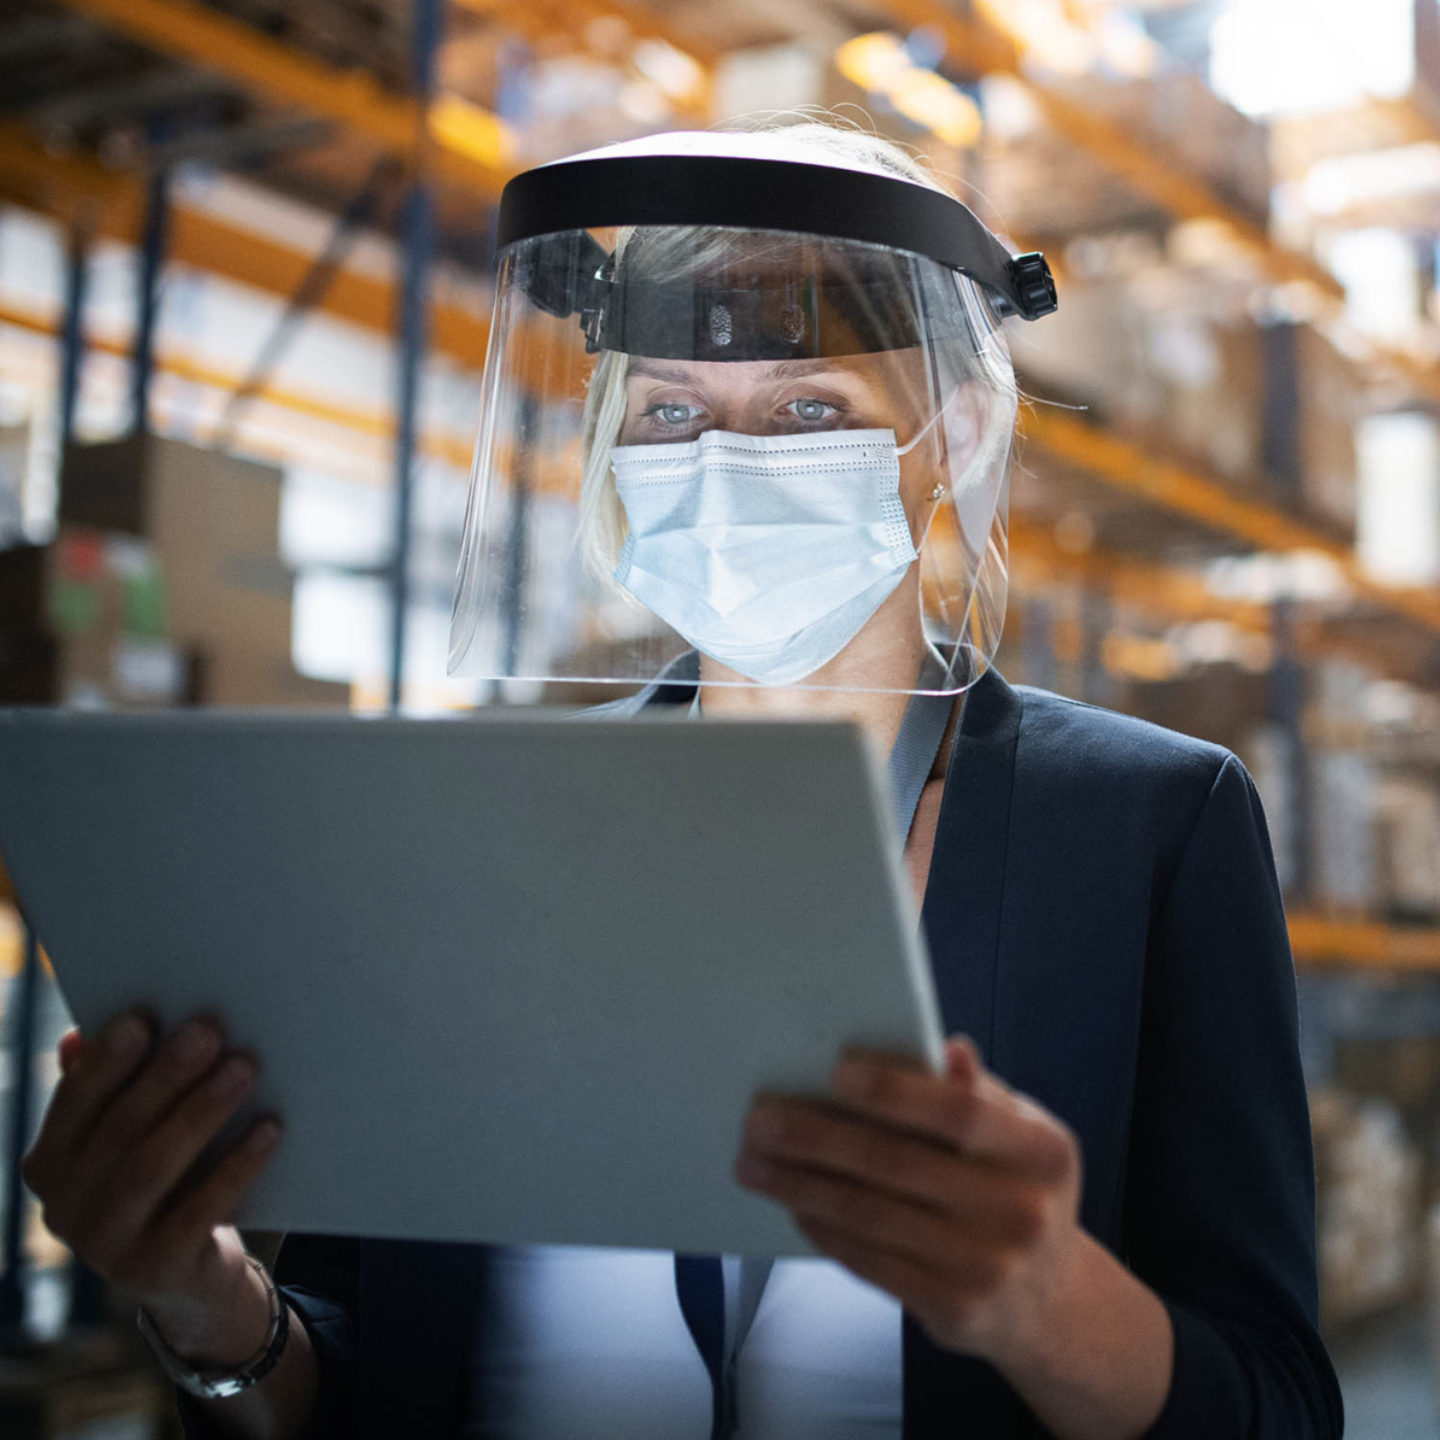 Woman wearing a face shield and mask while reading a tablet